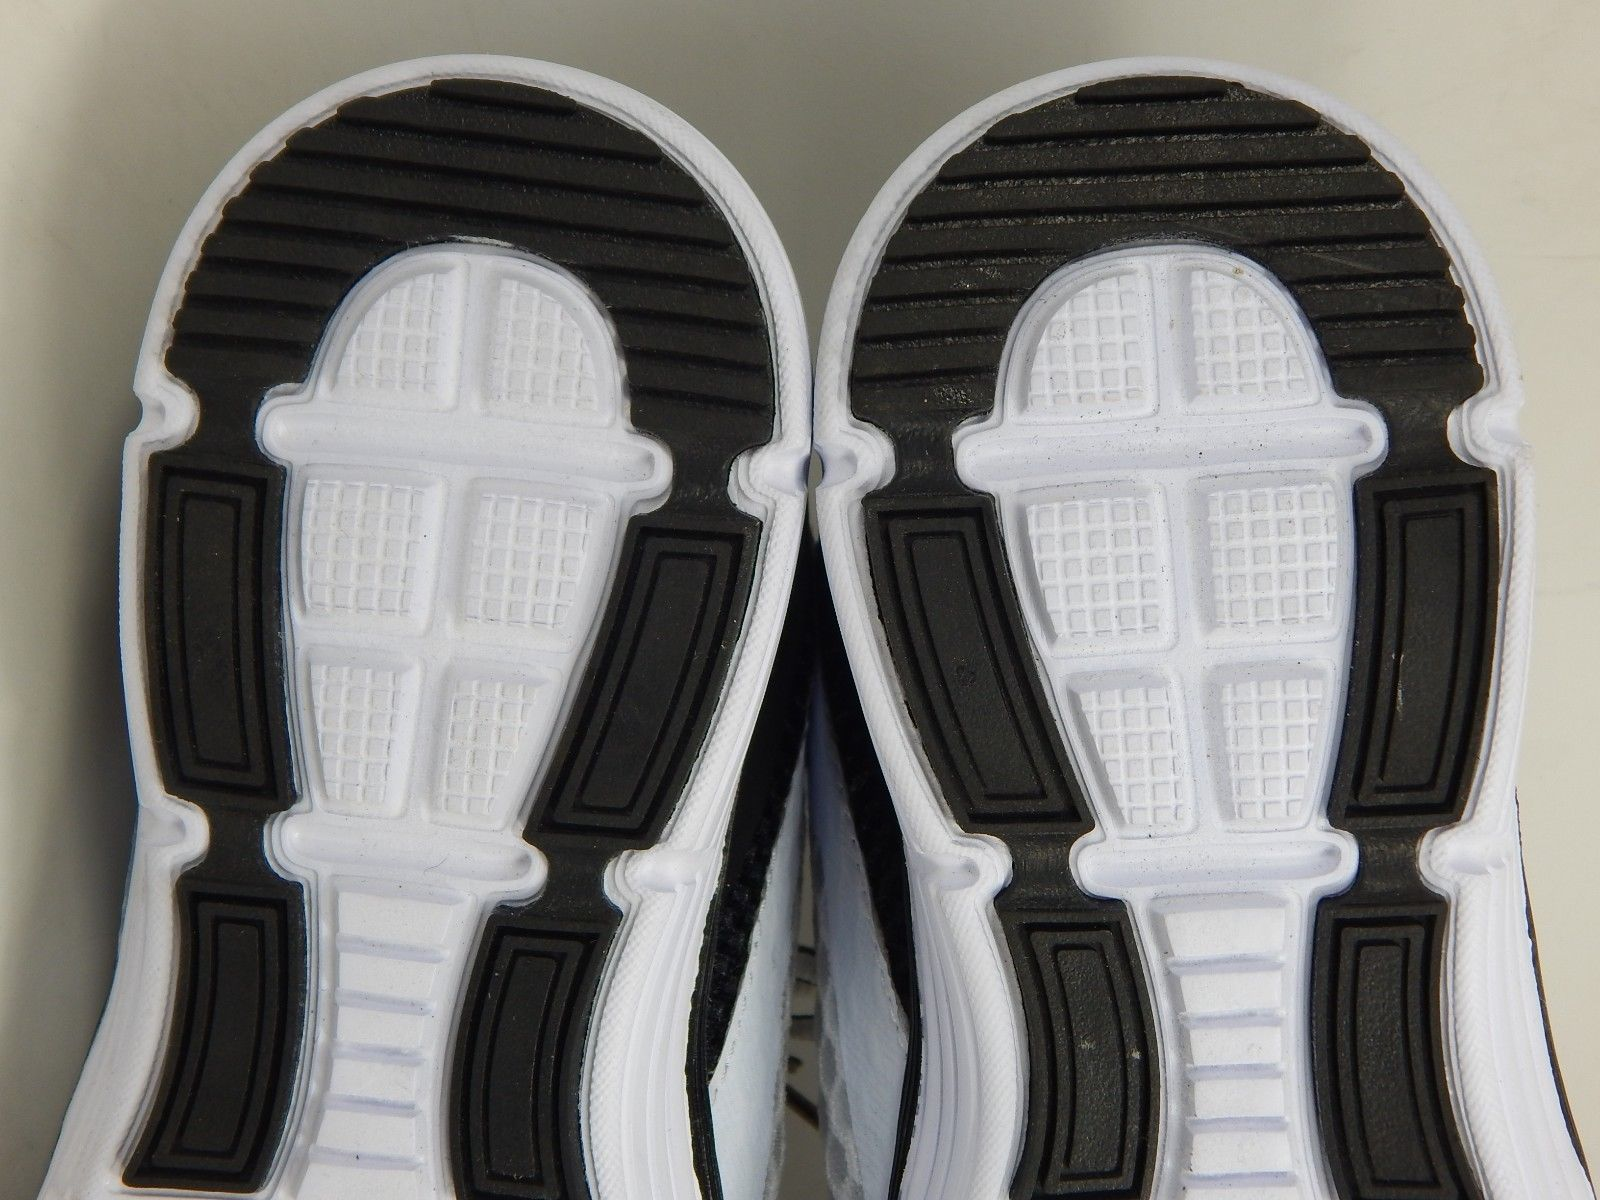 Us Polo Assn. Comfort Insole Women's Walking Shoes Size US 8.5 M (B) White